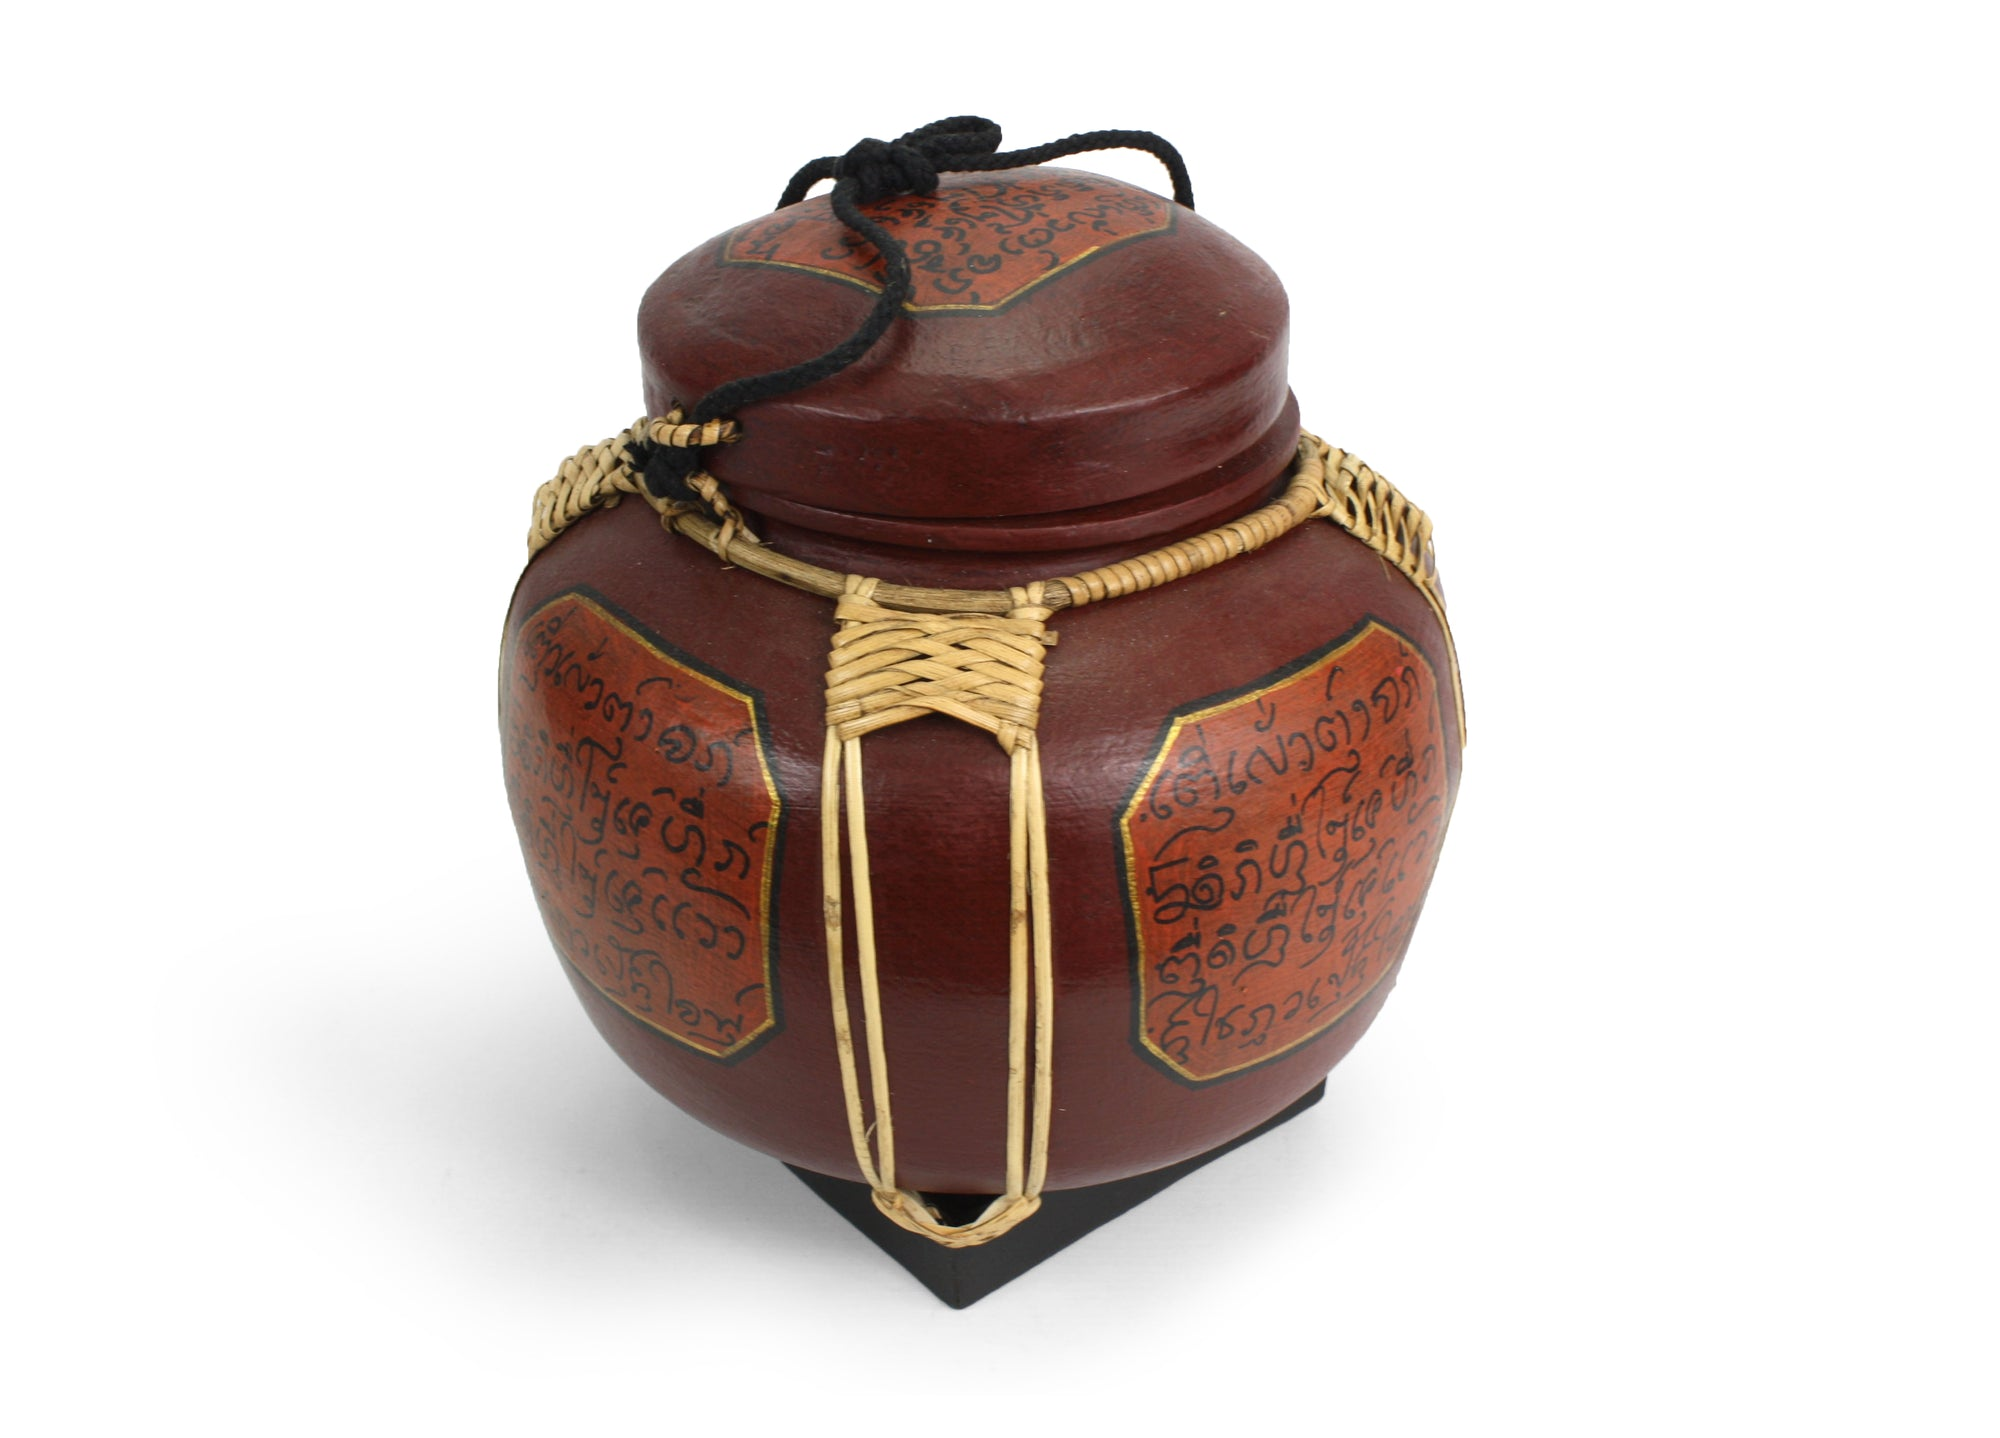 Rice seed box - Large Spherical Box, 28cm high, Lanna style, Reddish Brown - farangshop-co